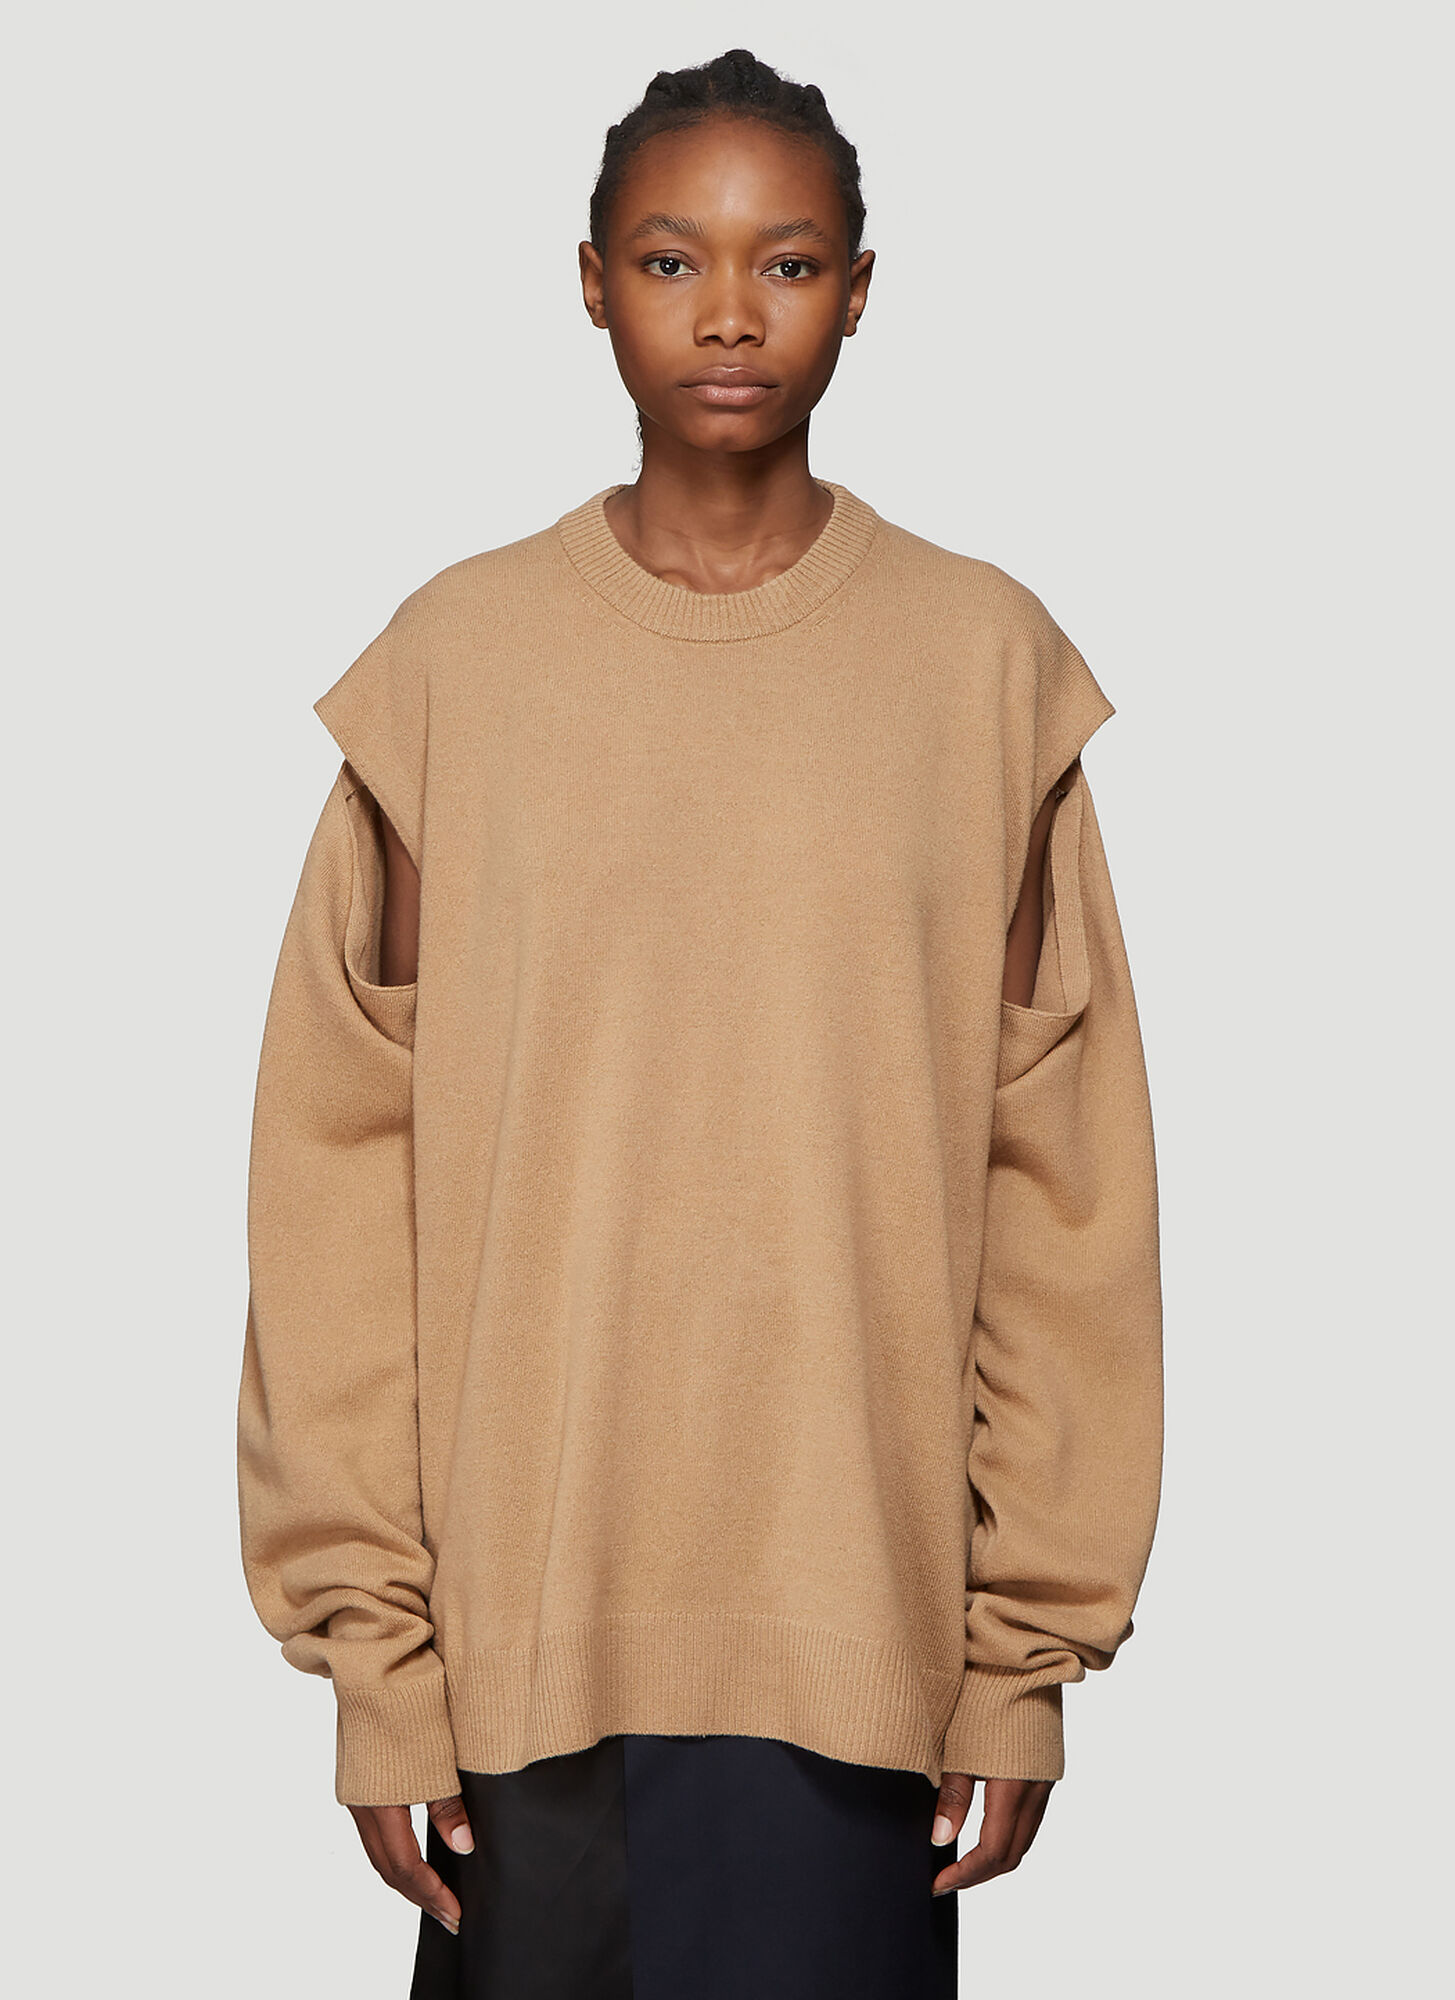 Maison Margiela Wool and Cashmere Blend Sweater in Brown